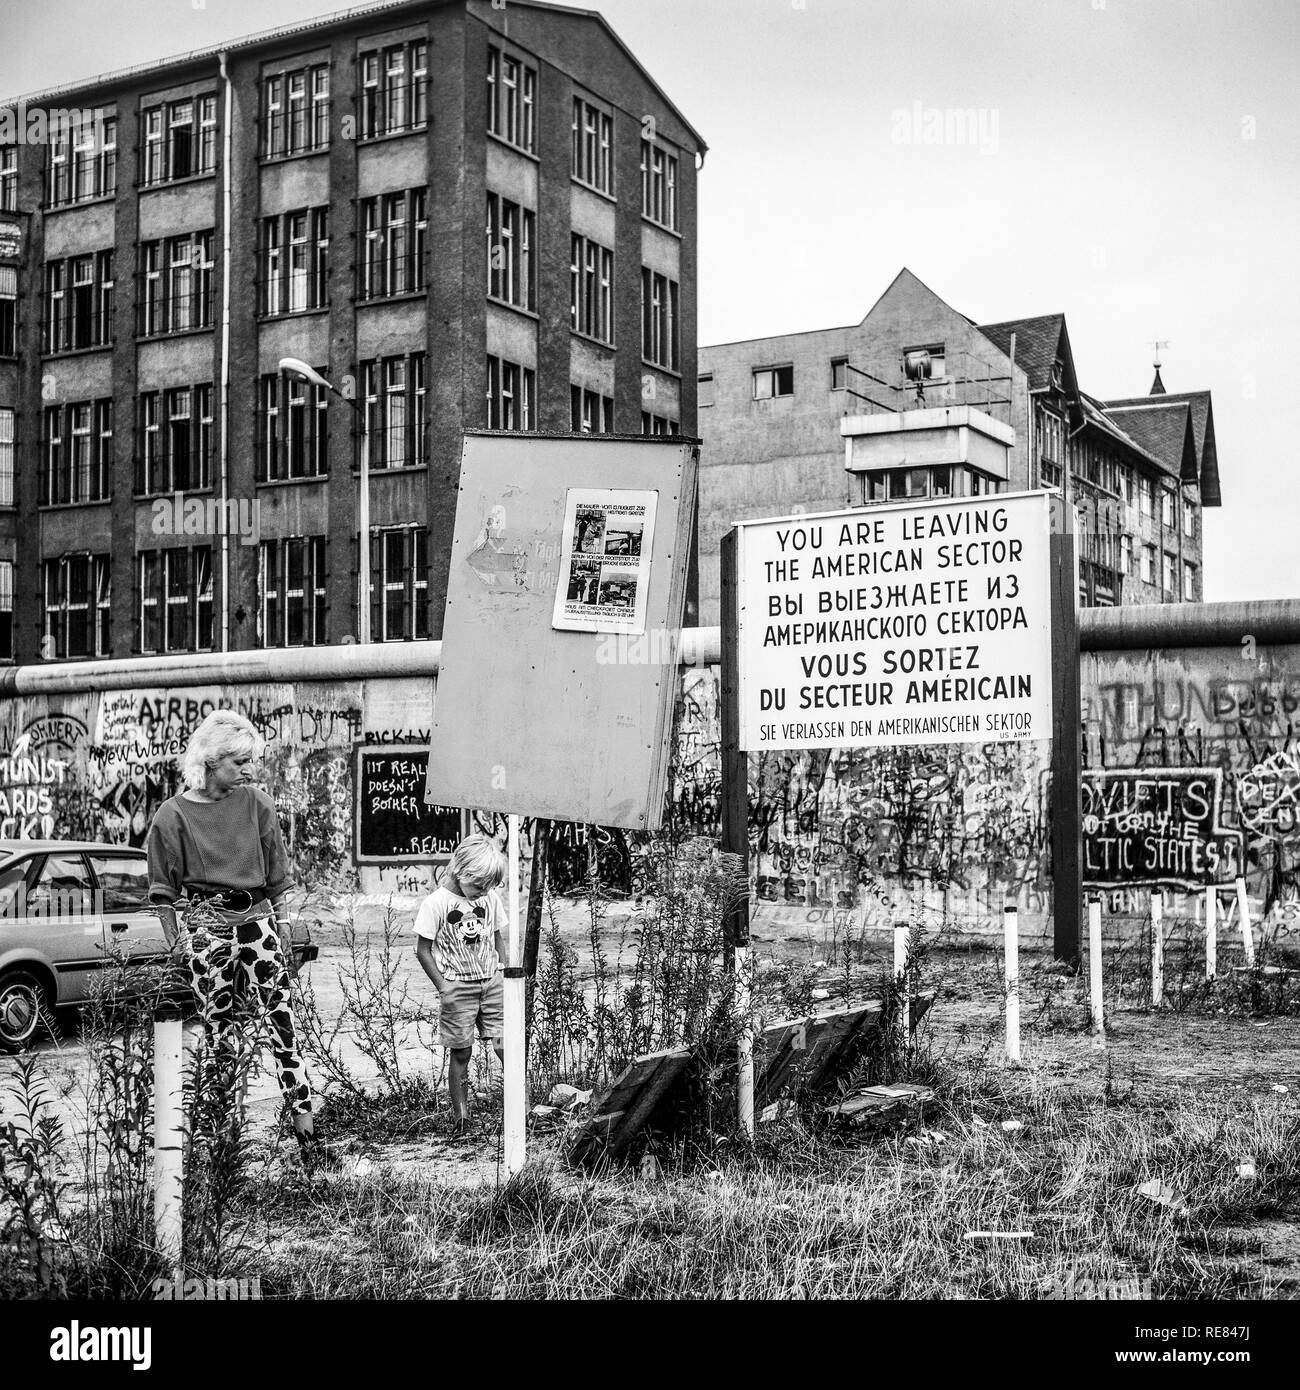 August 1986, woman and boy, leaving American sector warning sign, Berlin Wall graffitis, Zimmerstrasse street, West Berlin side, Germany, Europe, - Stock Image